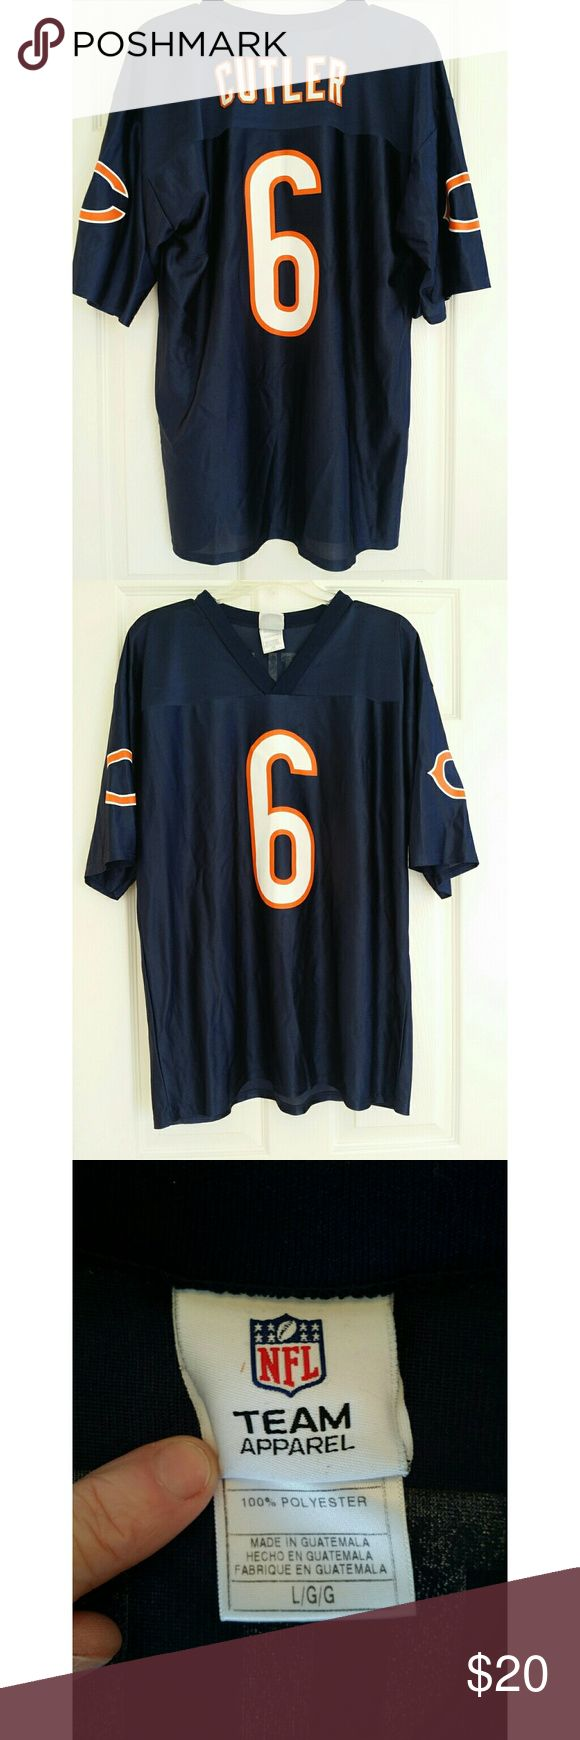 Mens Chicago Bears Jay Cutler NFL Navy Blue Large NFL Team Apparel brand Chicago Bears NFL jersey for Jay Cutler.   100% polyester machine wash Very good used condition. A couple of small snags in the front. NFL Team Apparel Shirts